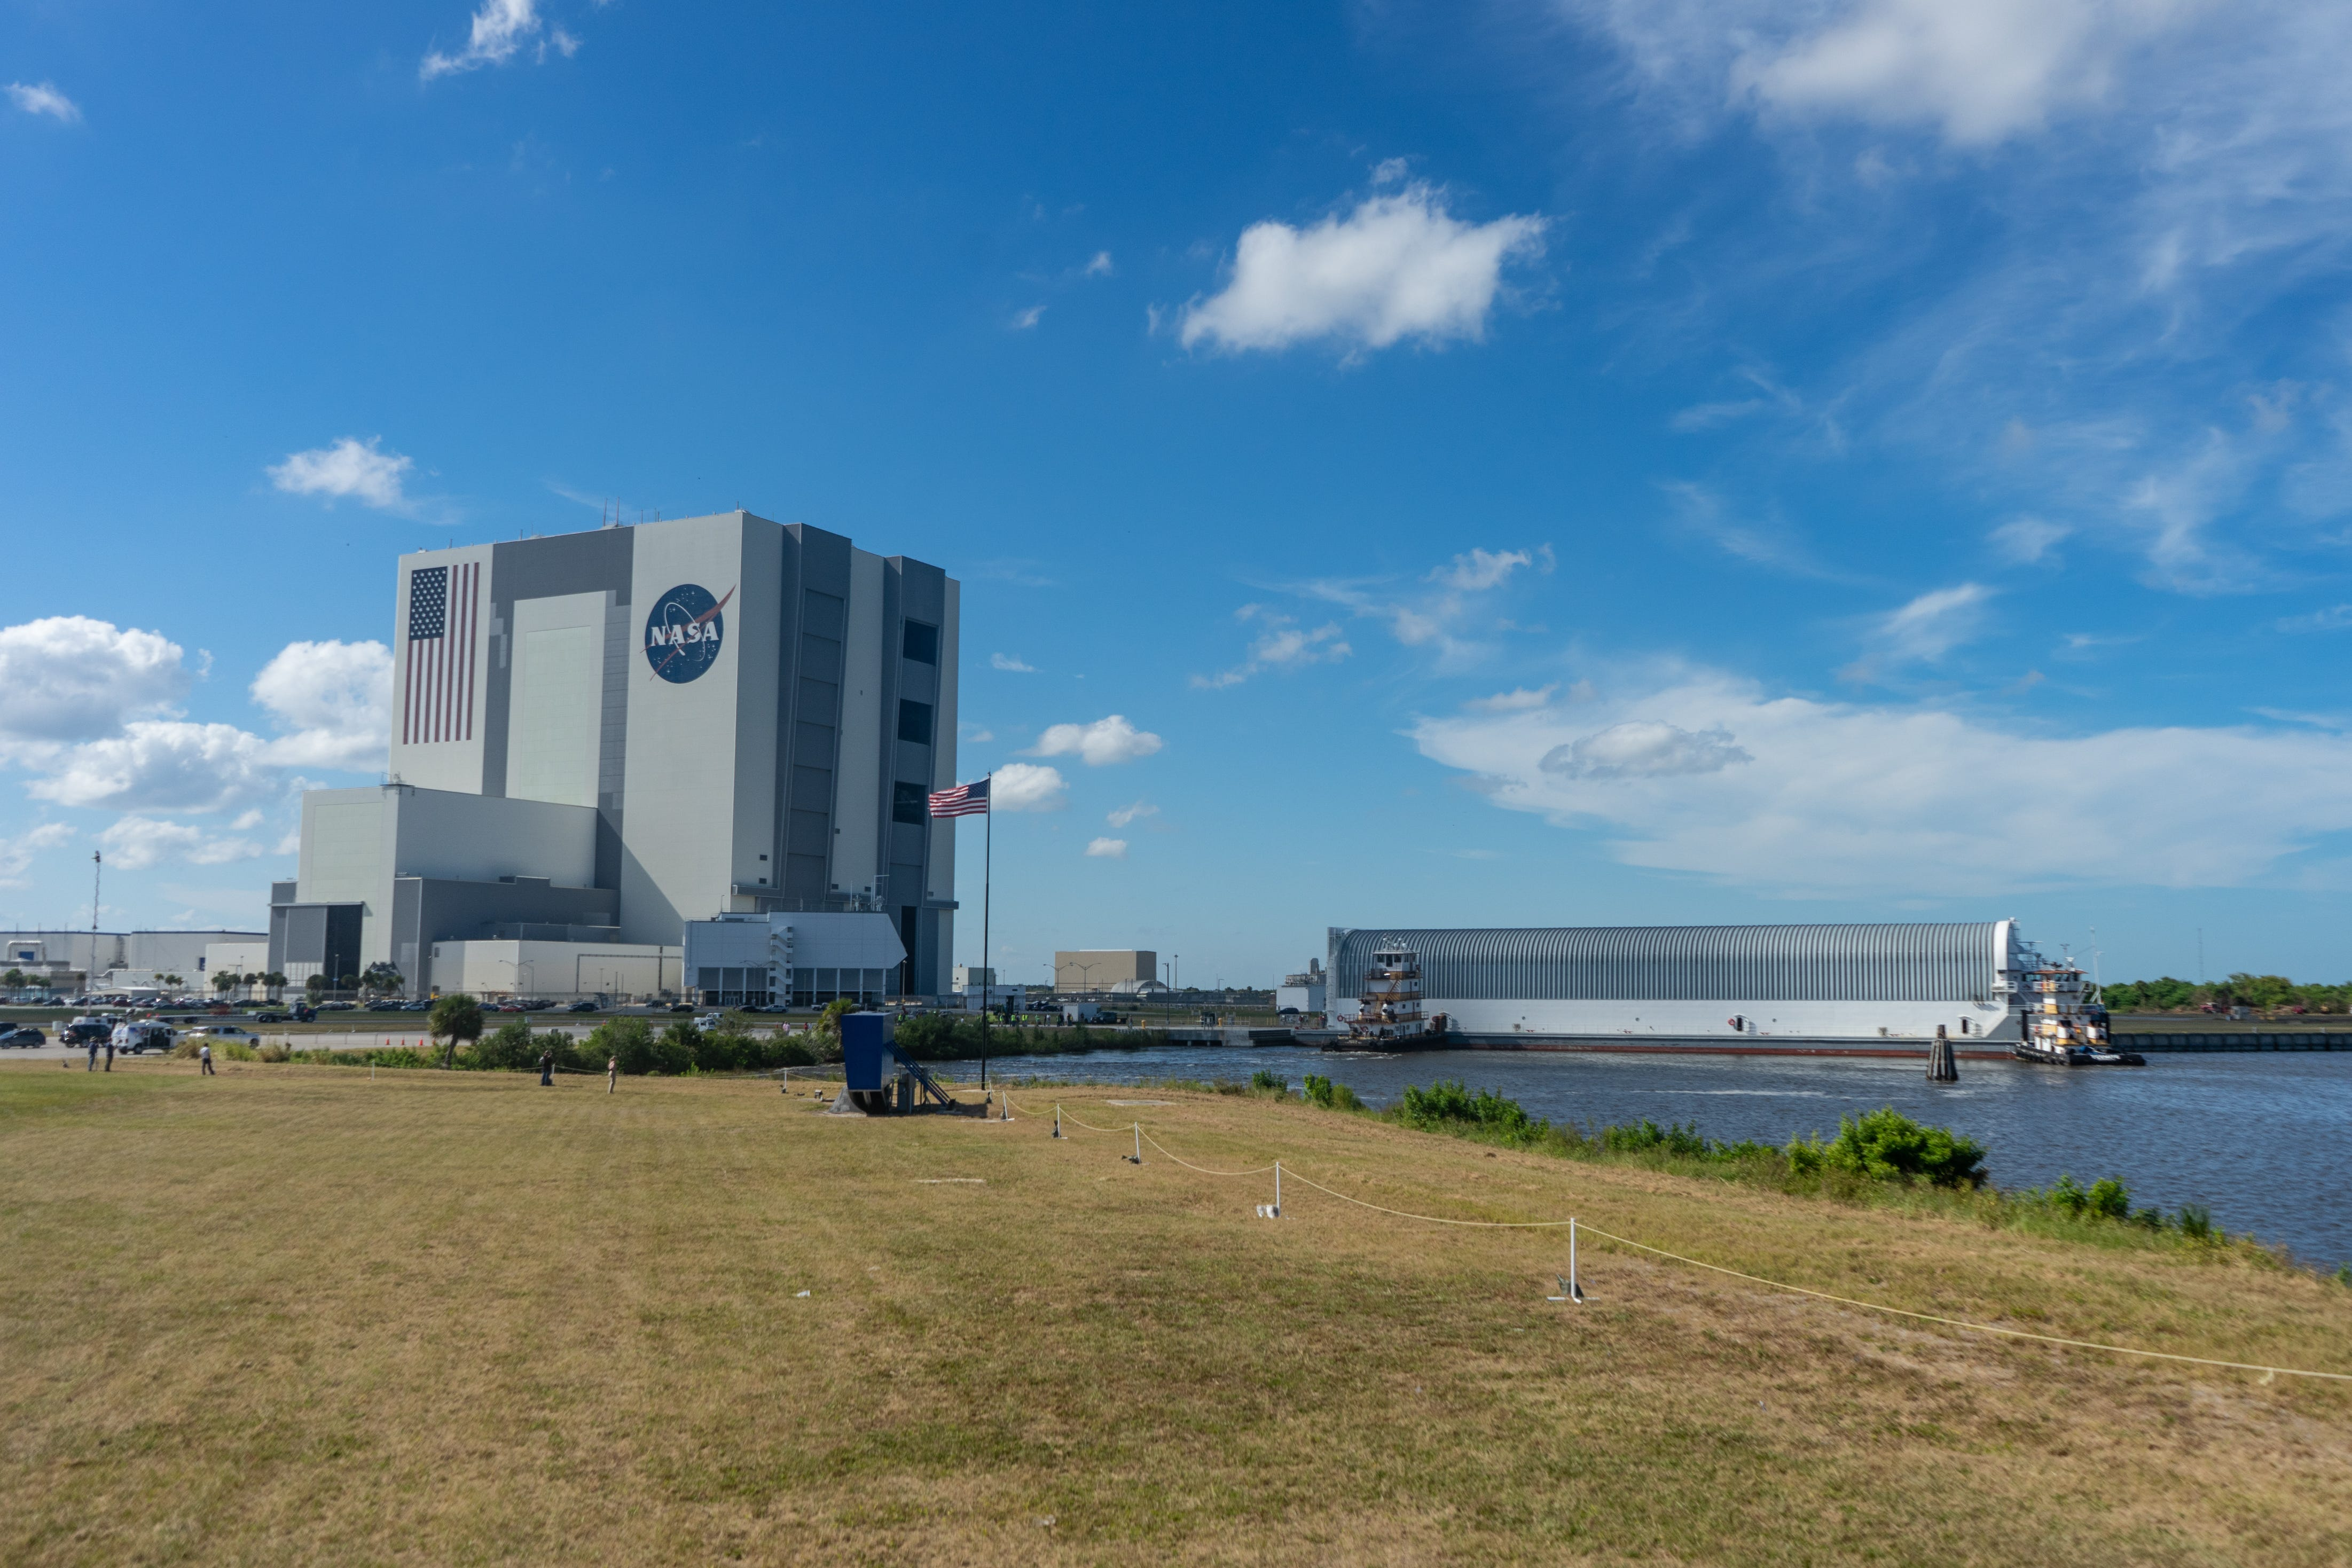 Photos: Pegasus barge arrives at KSC with Space Launch System hardware